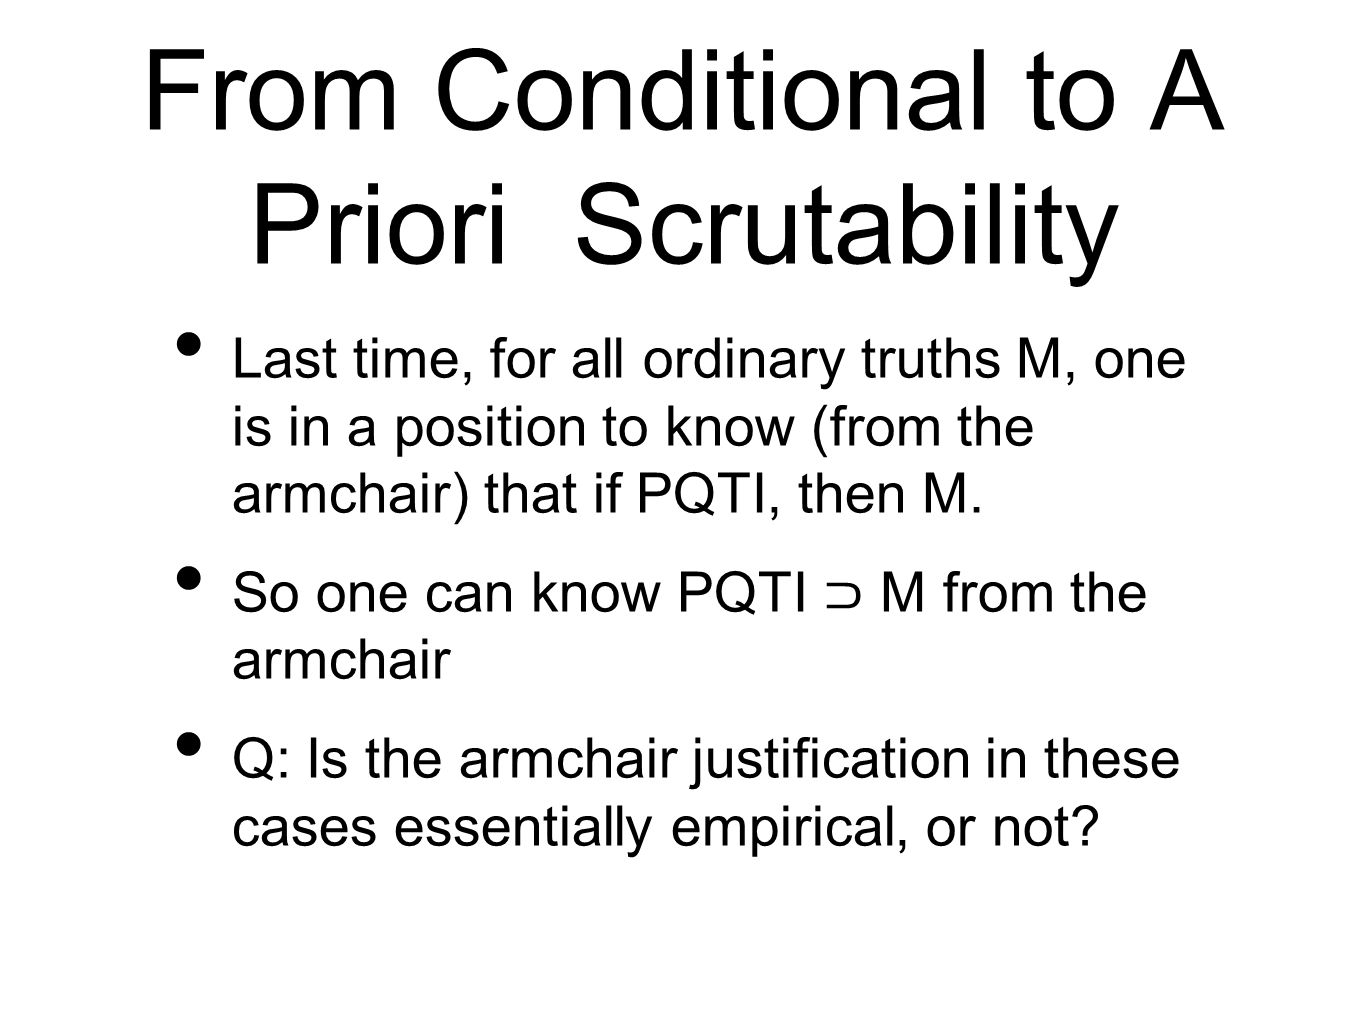 From Conditional to A Priori Scrutability Last time, for all ordinary truths M, one is in a position to know (from the armchair) that if PQTI, then M.